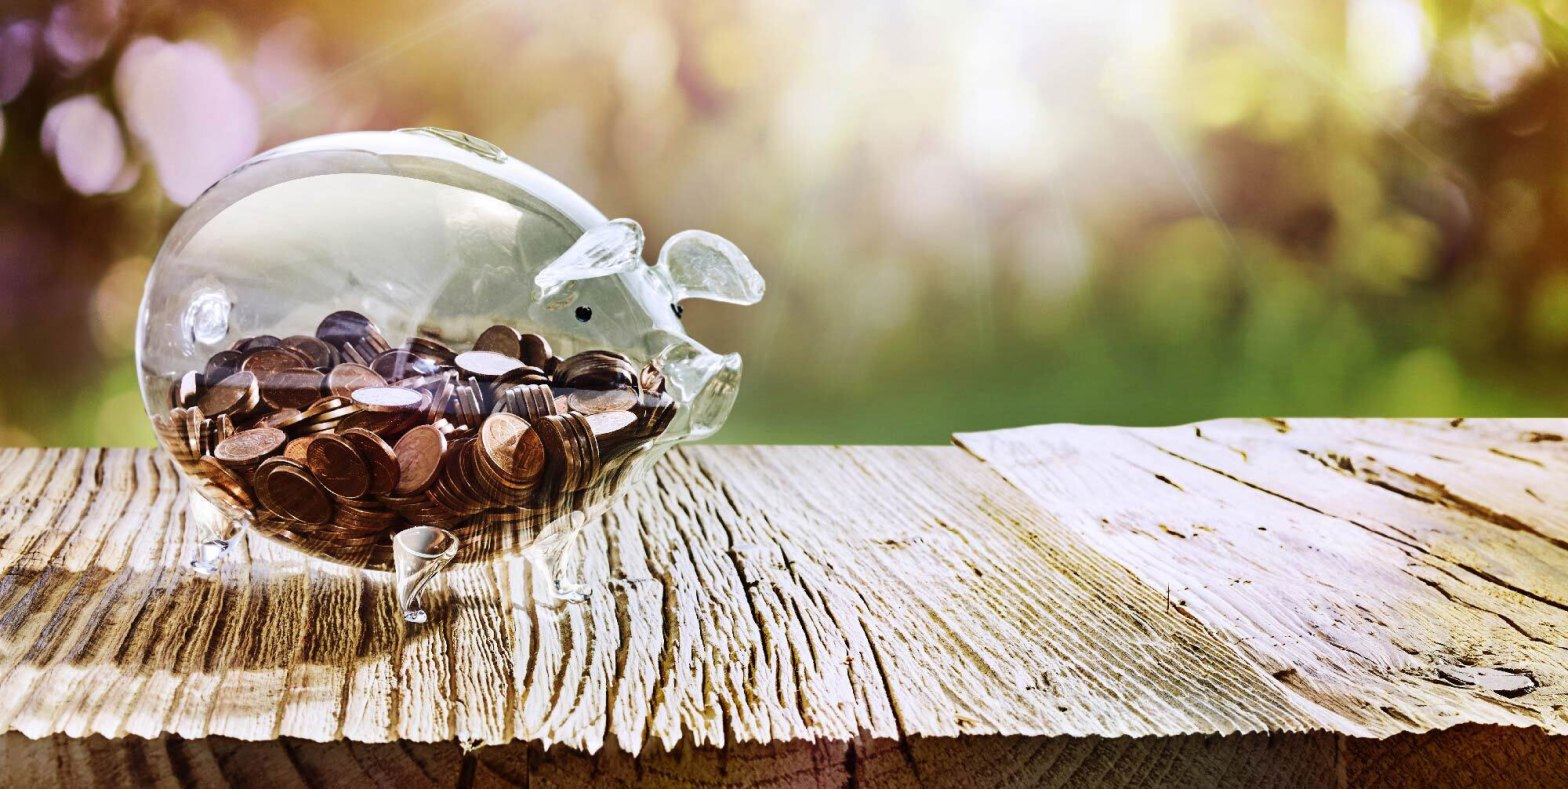 full glass piggy bank with coins in it sitting on a wooden picnic table